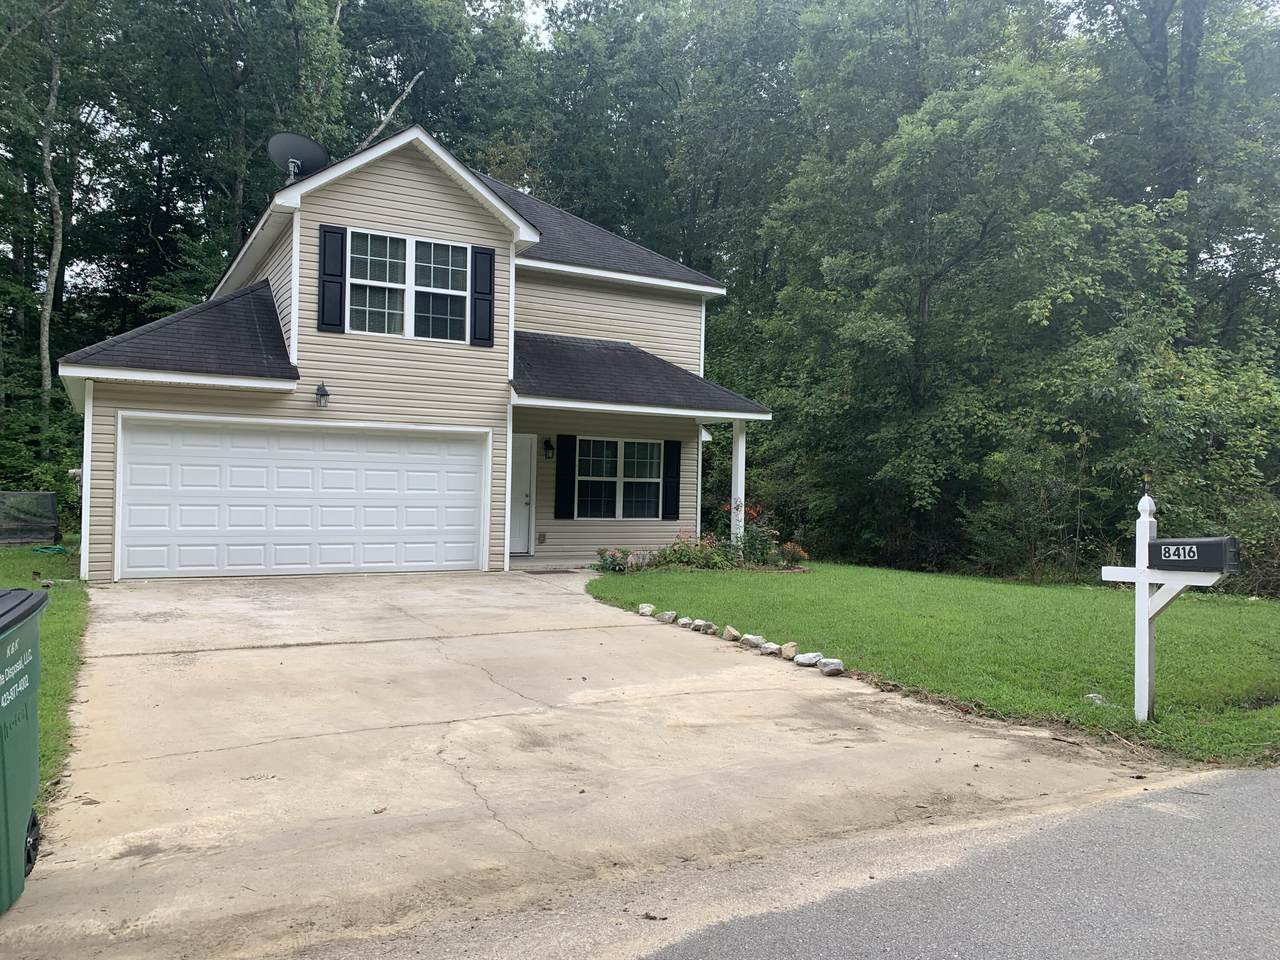 8416 Old Cleveland Pike - Photo 1